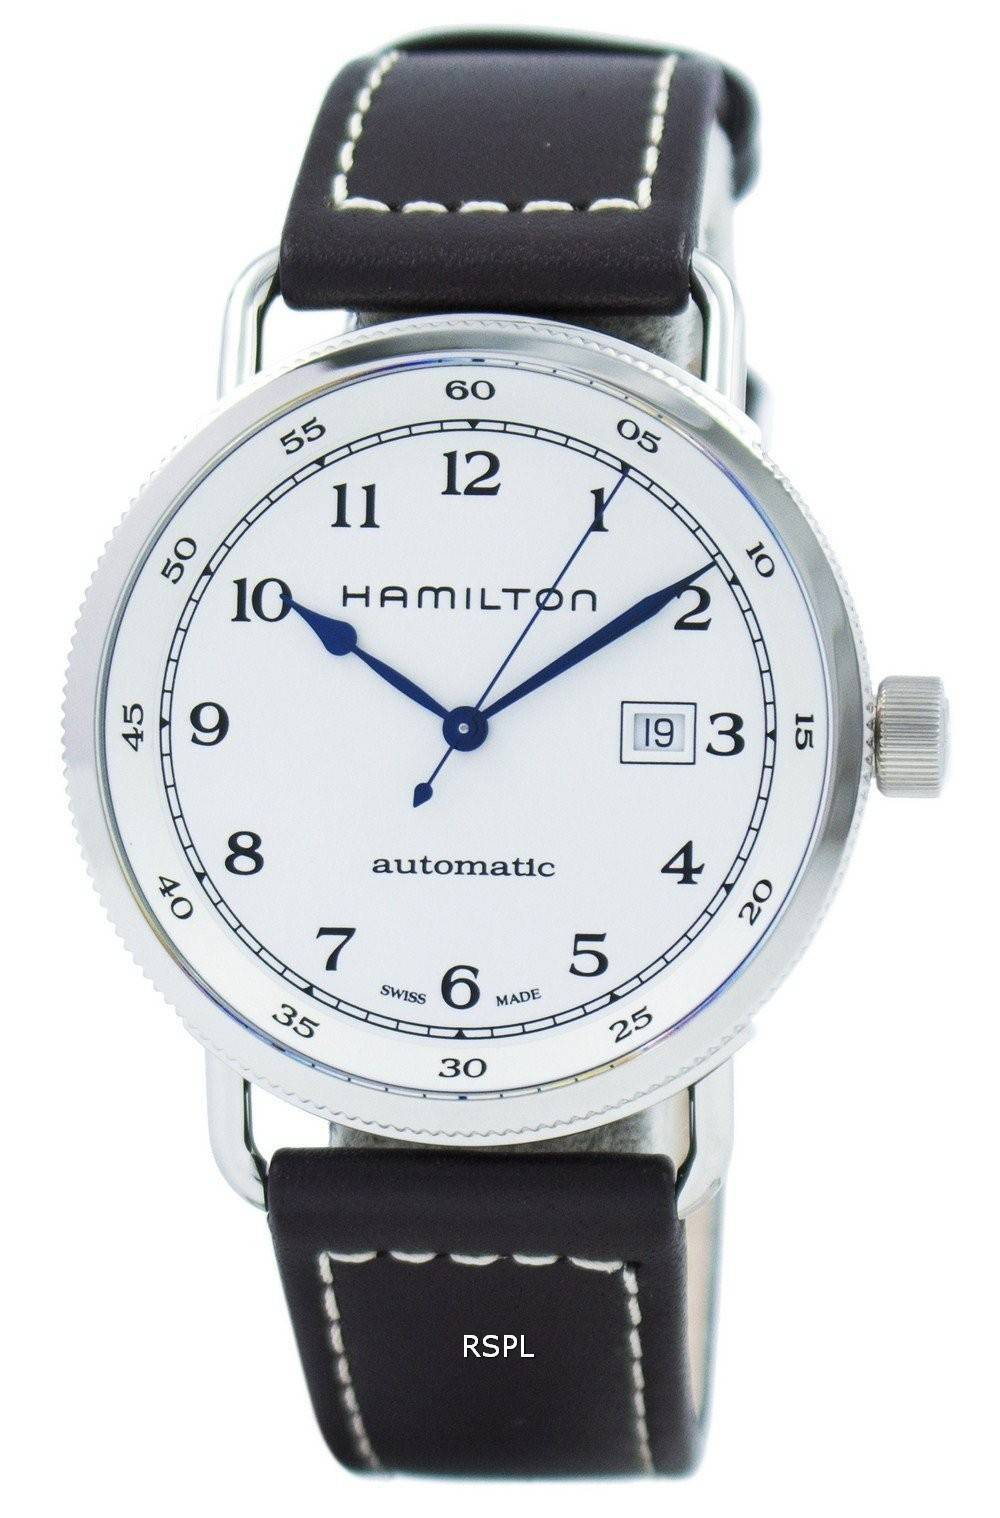 73c6790aae3 Hamilton Khaki Navy Pioneer Automatic H77715553 Men s Watch Singapore